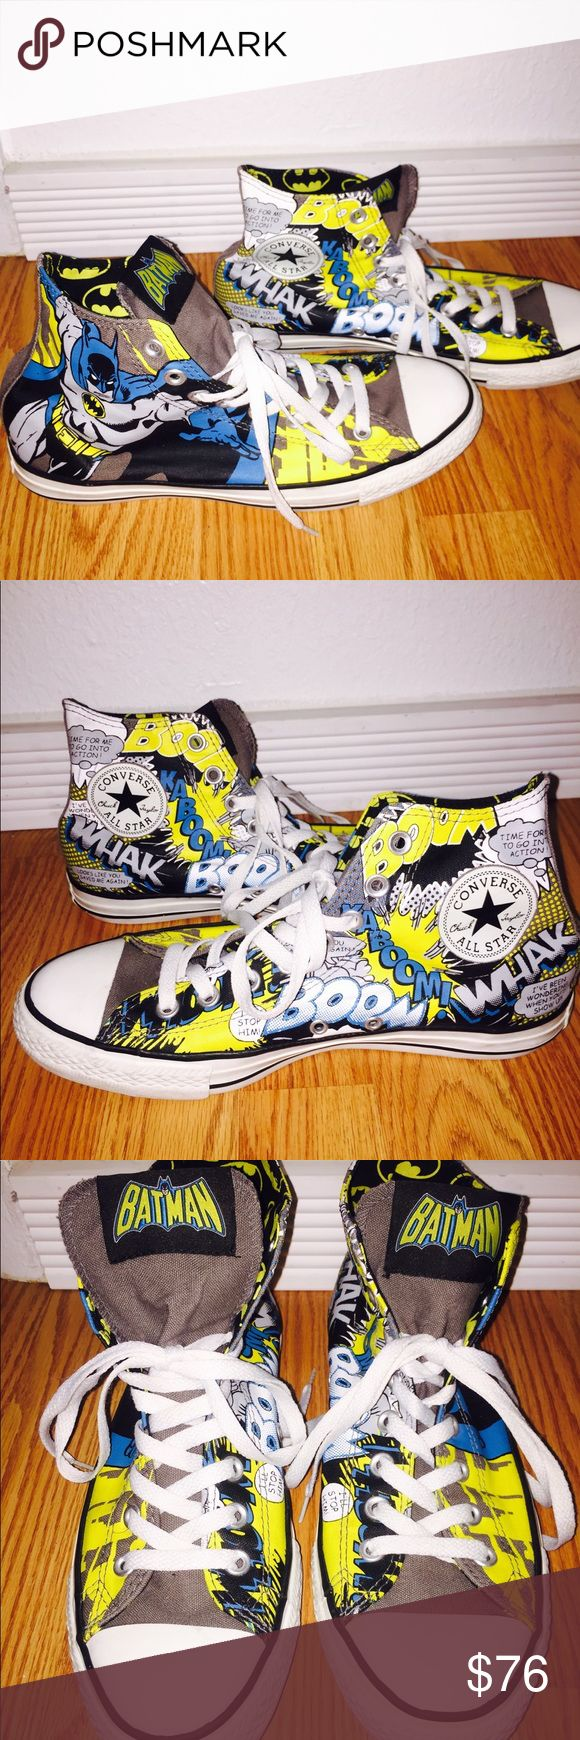 Batman Converse, high to low style like new! Batman Converse, high to low style, I love that when you flip them low, you get the whole Batman logo print. It's like having 2 shoes in 1 hahah, that's the reason I bought these❤️❤️, sadly I ordered a 10 thinking it would be a good idea and I tried wearing them once for an hour and they are just too big  😪. Pretty much new and perfect for any comic book or converse fan. Converse Shoes Sneakers